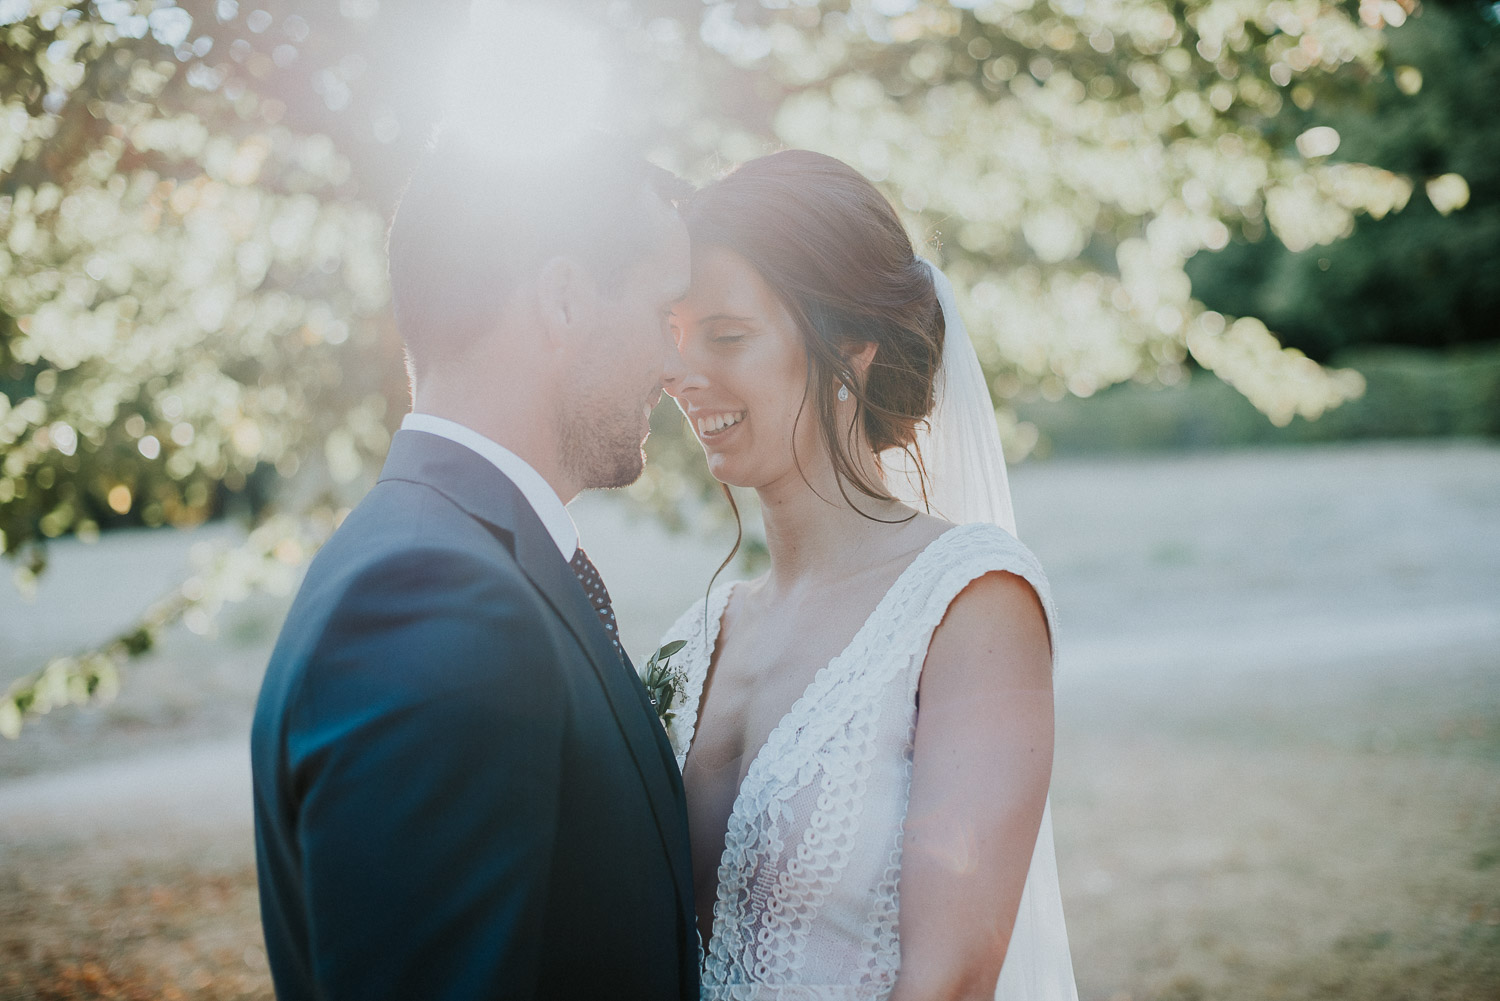 bergerac_wedding_katy_webb_photography_france_UK129